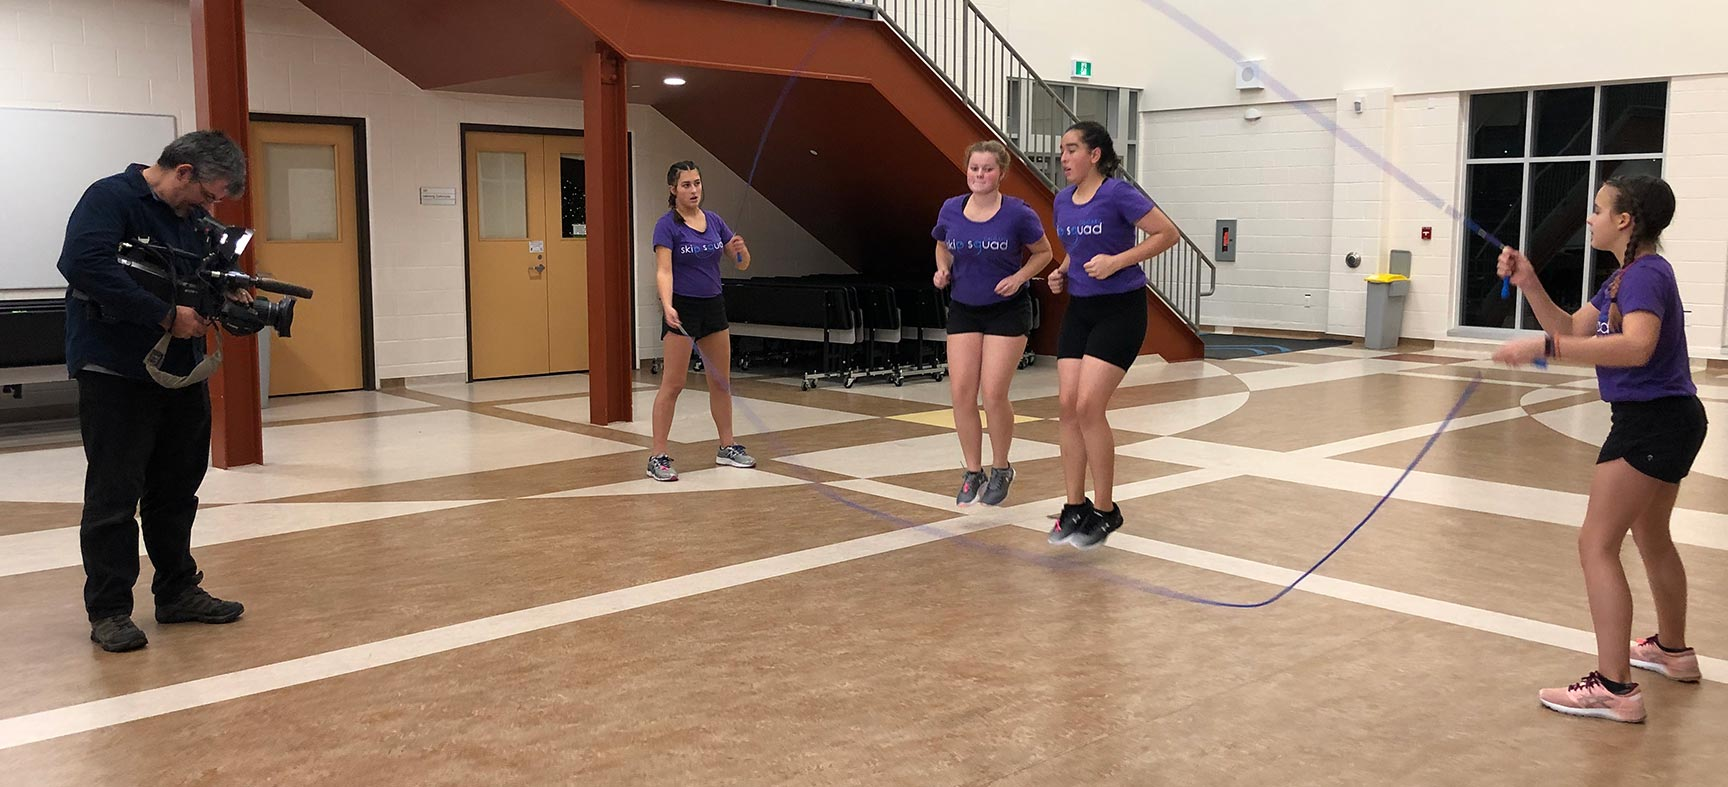 Rope skipping offers physical, emotional and social benefits to Calgary team